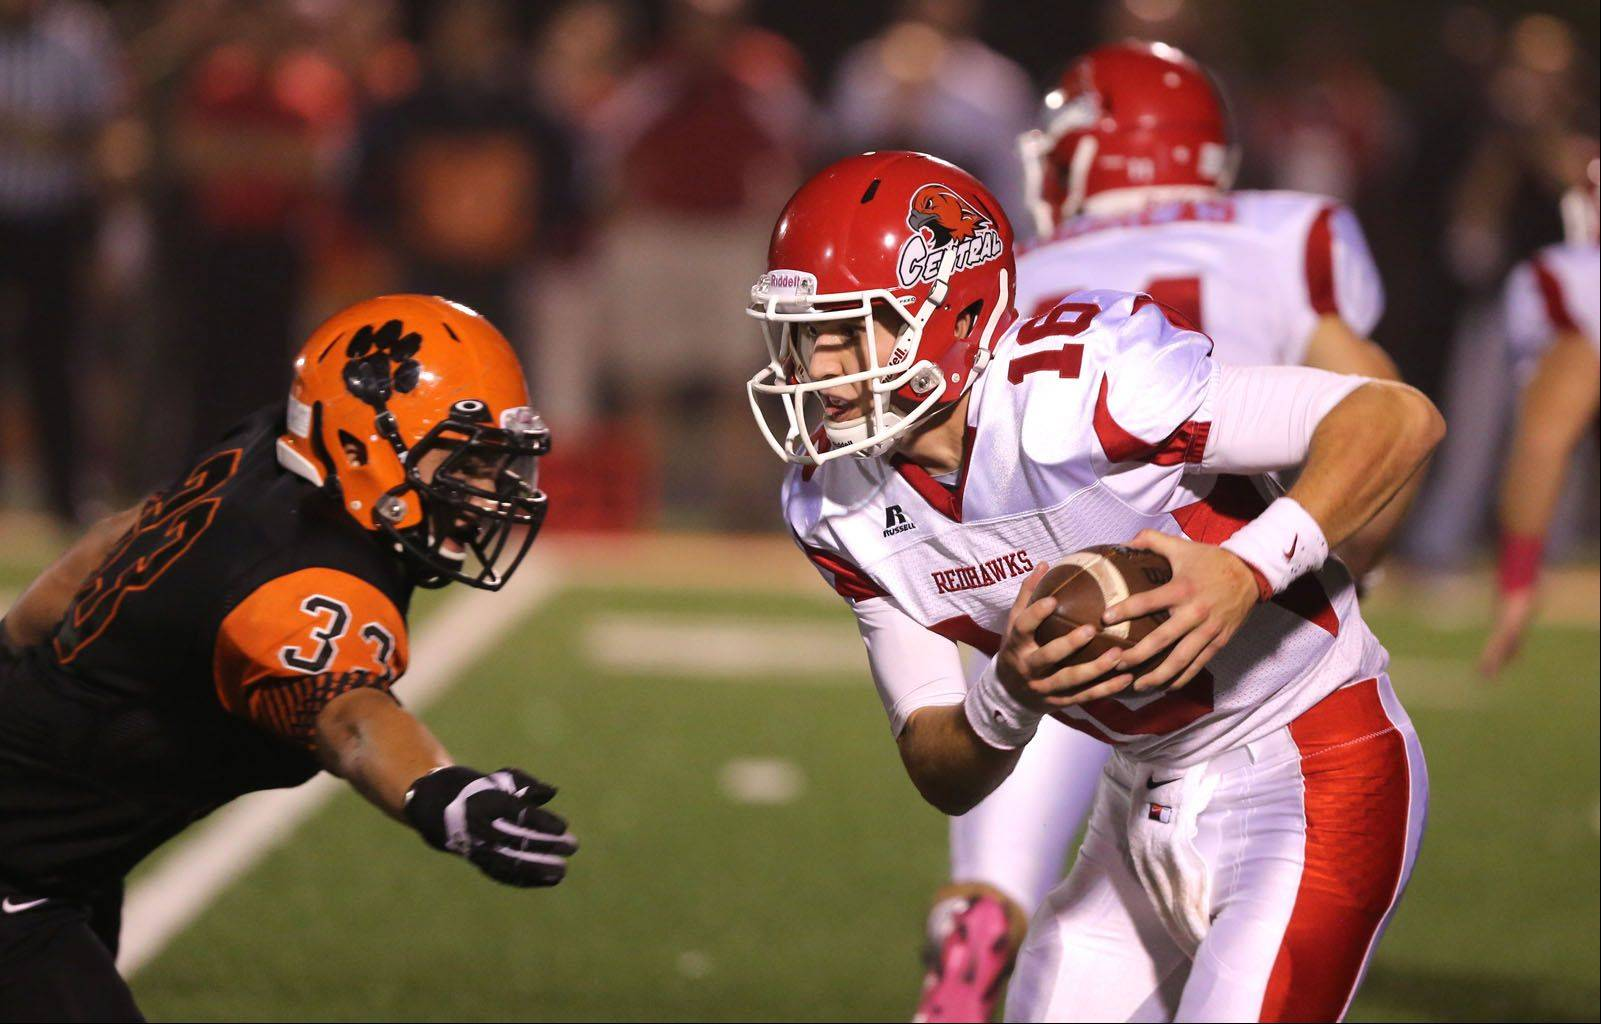 Week-5- Photos from the Naperville Central at Wheaton Warrenville South football game on Friday, October 4.